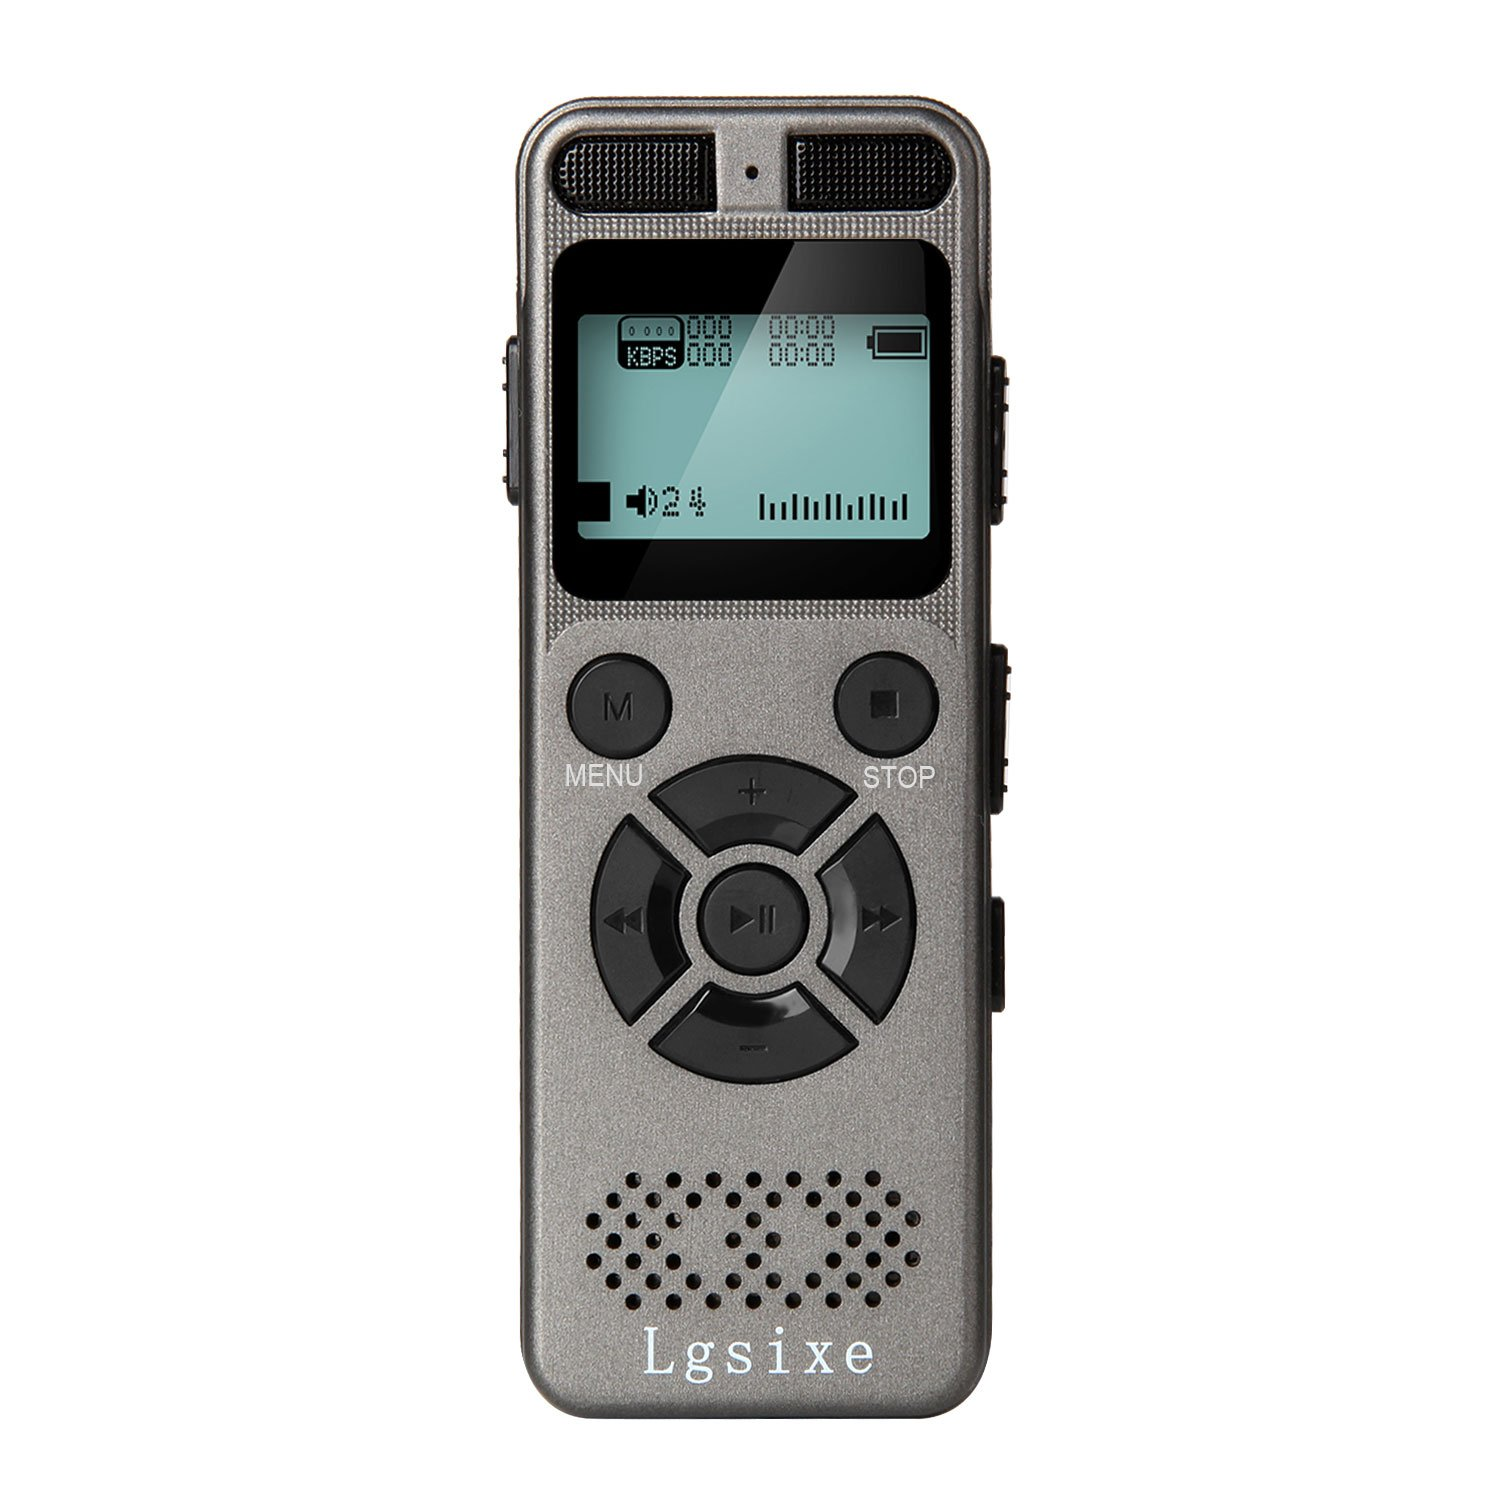 Lgsixe Digital Voice Recorder 8GB 1536Kbps Voice Recording device Record Double Microphone/Noise Cancelling/Voice Activated MP3 Digital Audio Player for Class, Lectures, Interviews